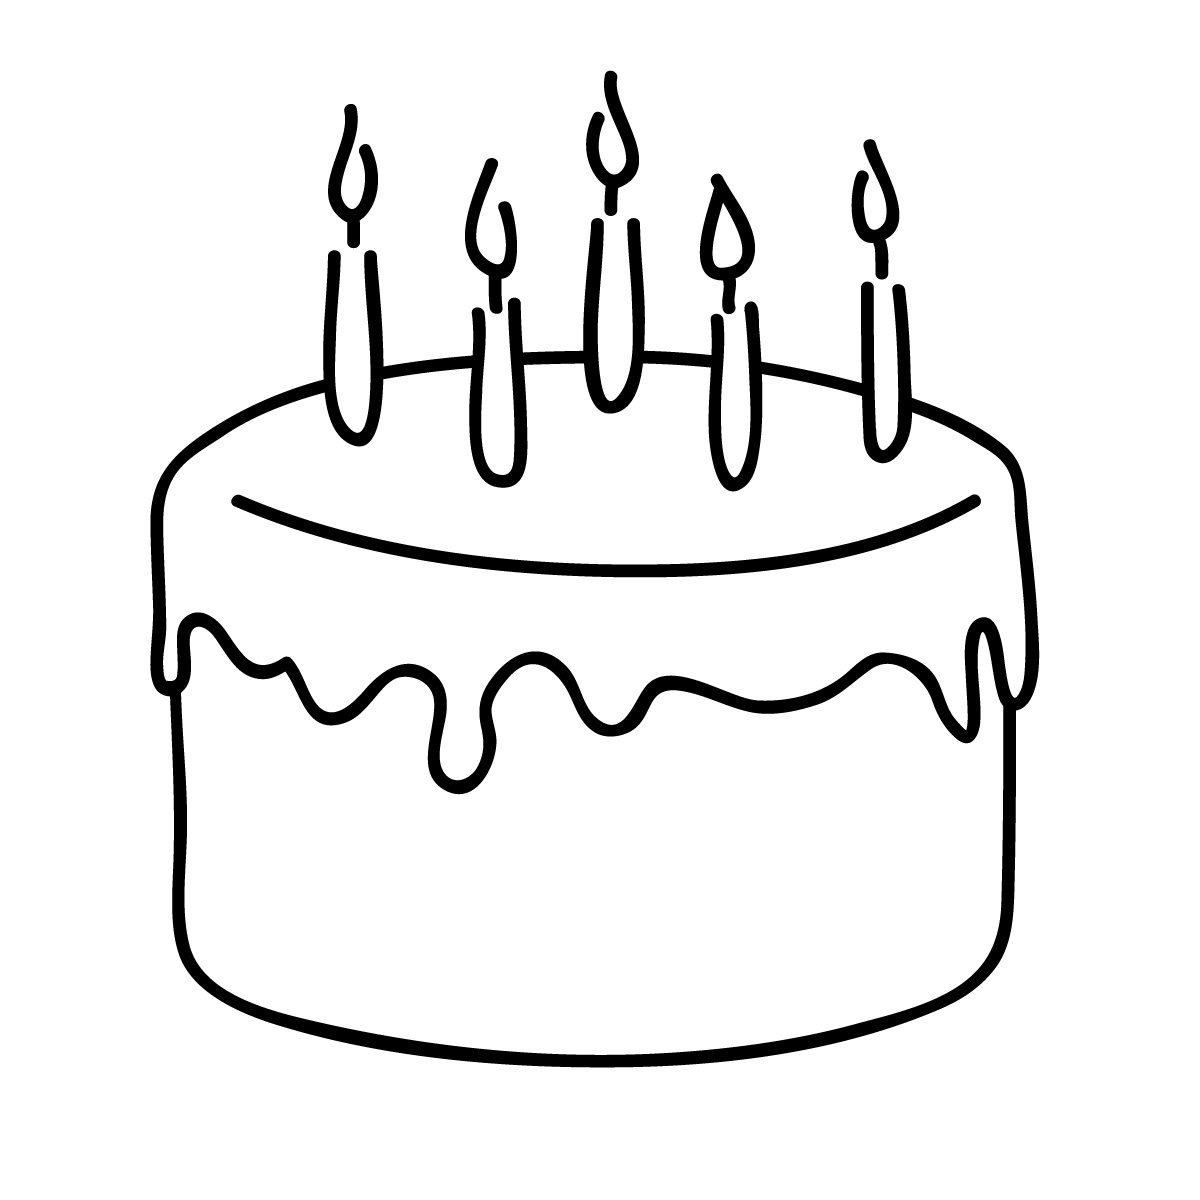 Free birthday cake clip art clipart images 5